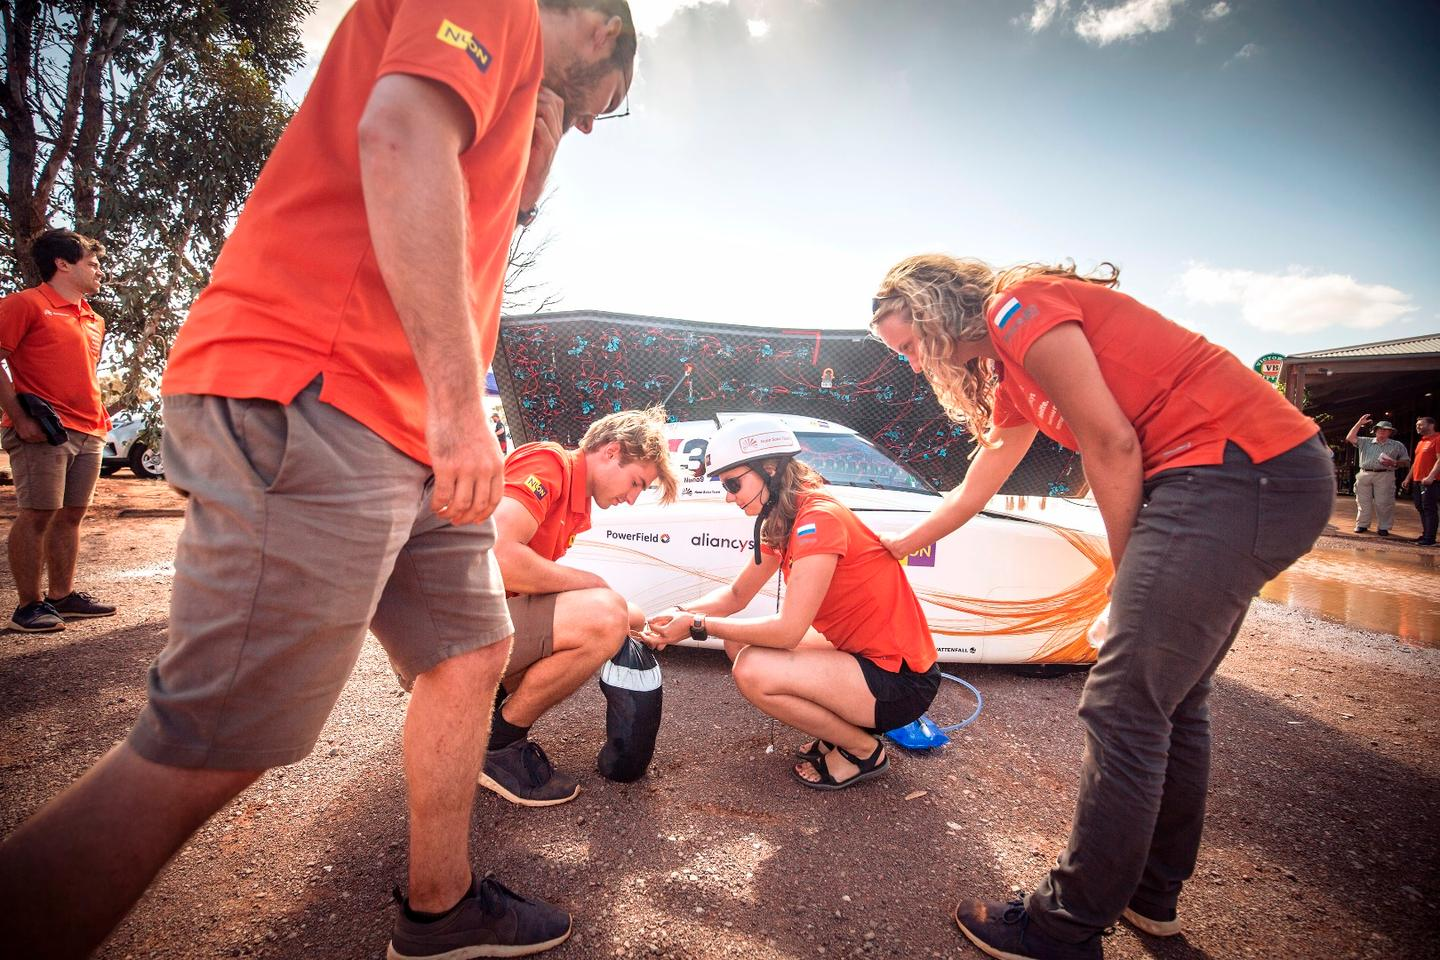 Members of the Nuon Solar Team in action during day four of the World Solar Challenge